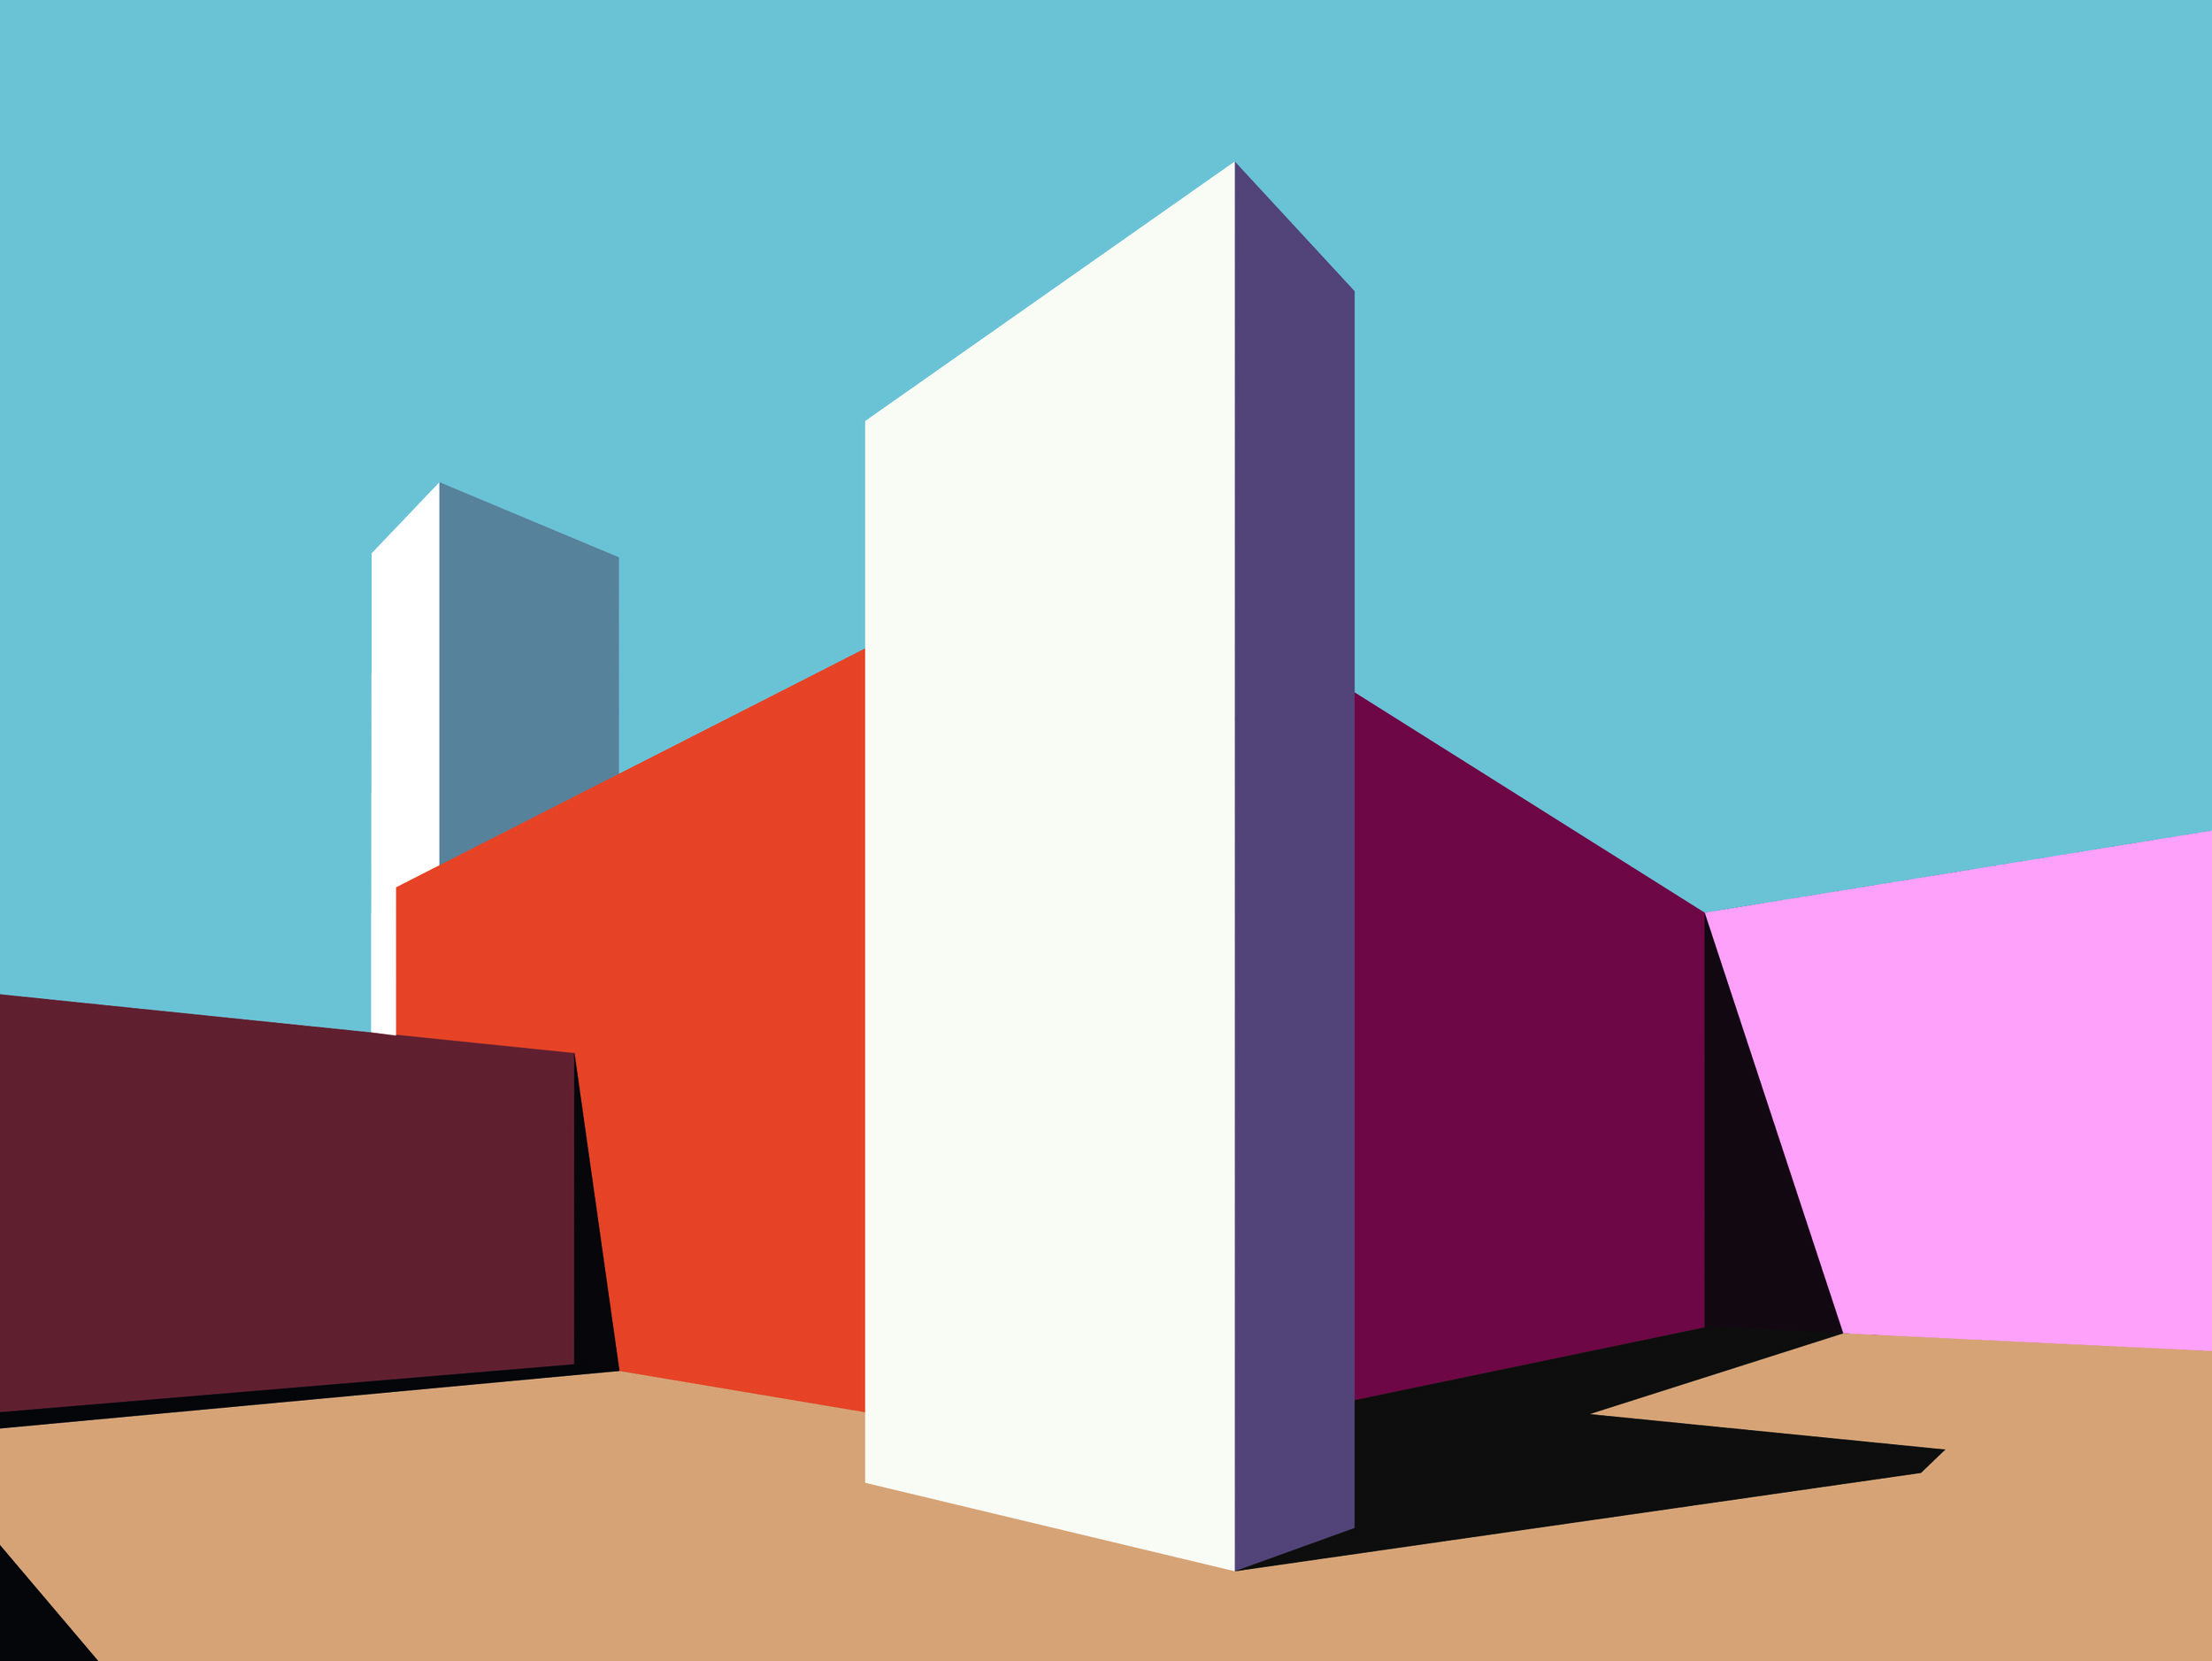 Illustration of Luís Barragan's architecture